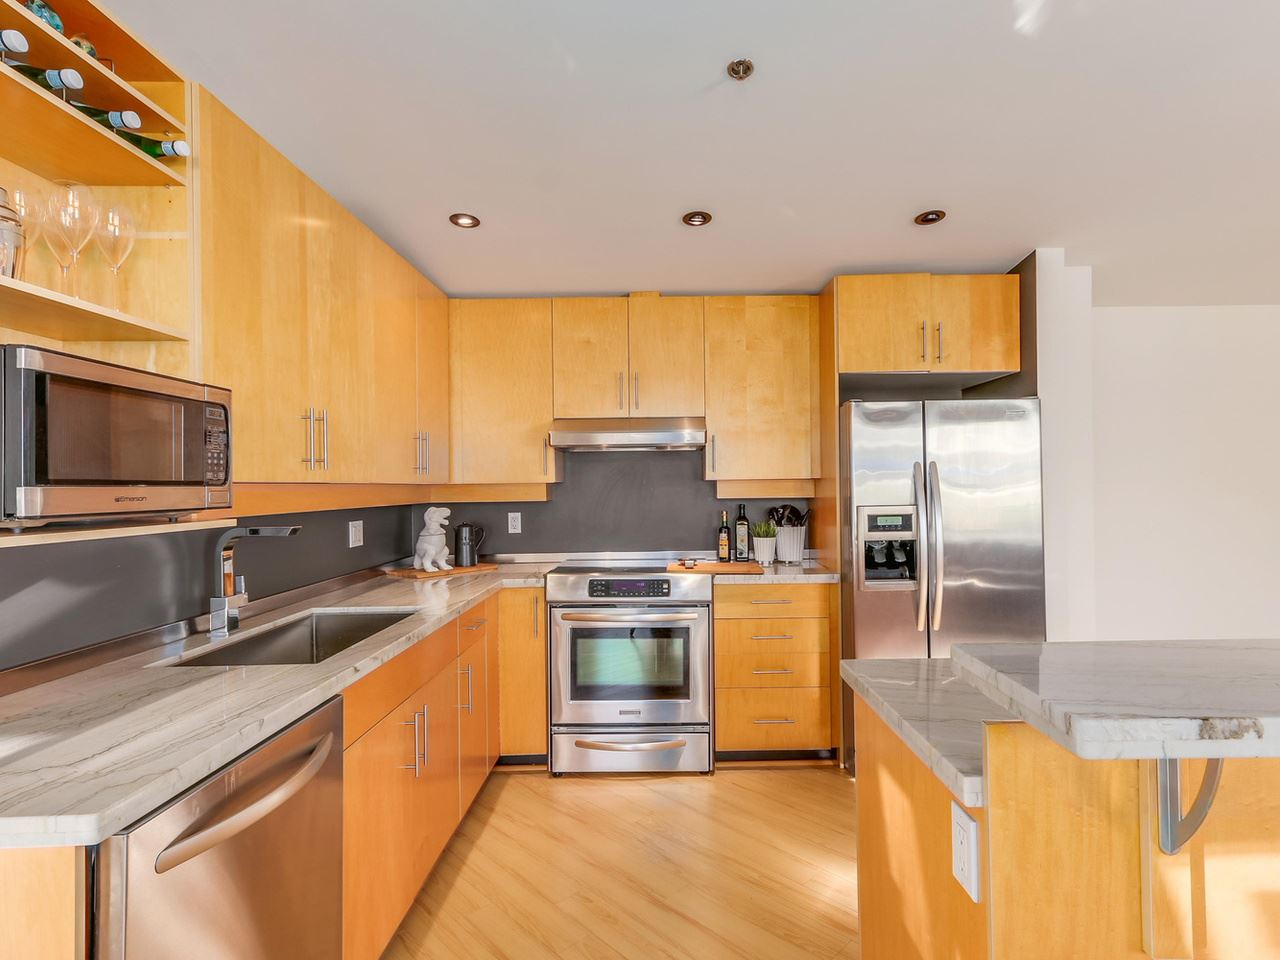 Photo 9: 511 549 COLUMBIA STREET in New Westminster: Downtown NW Condo for sale : MLS® # R2129468